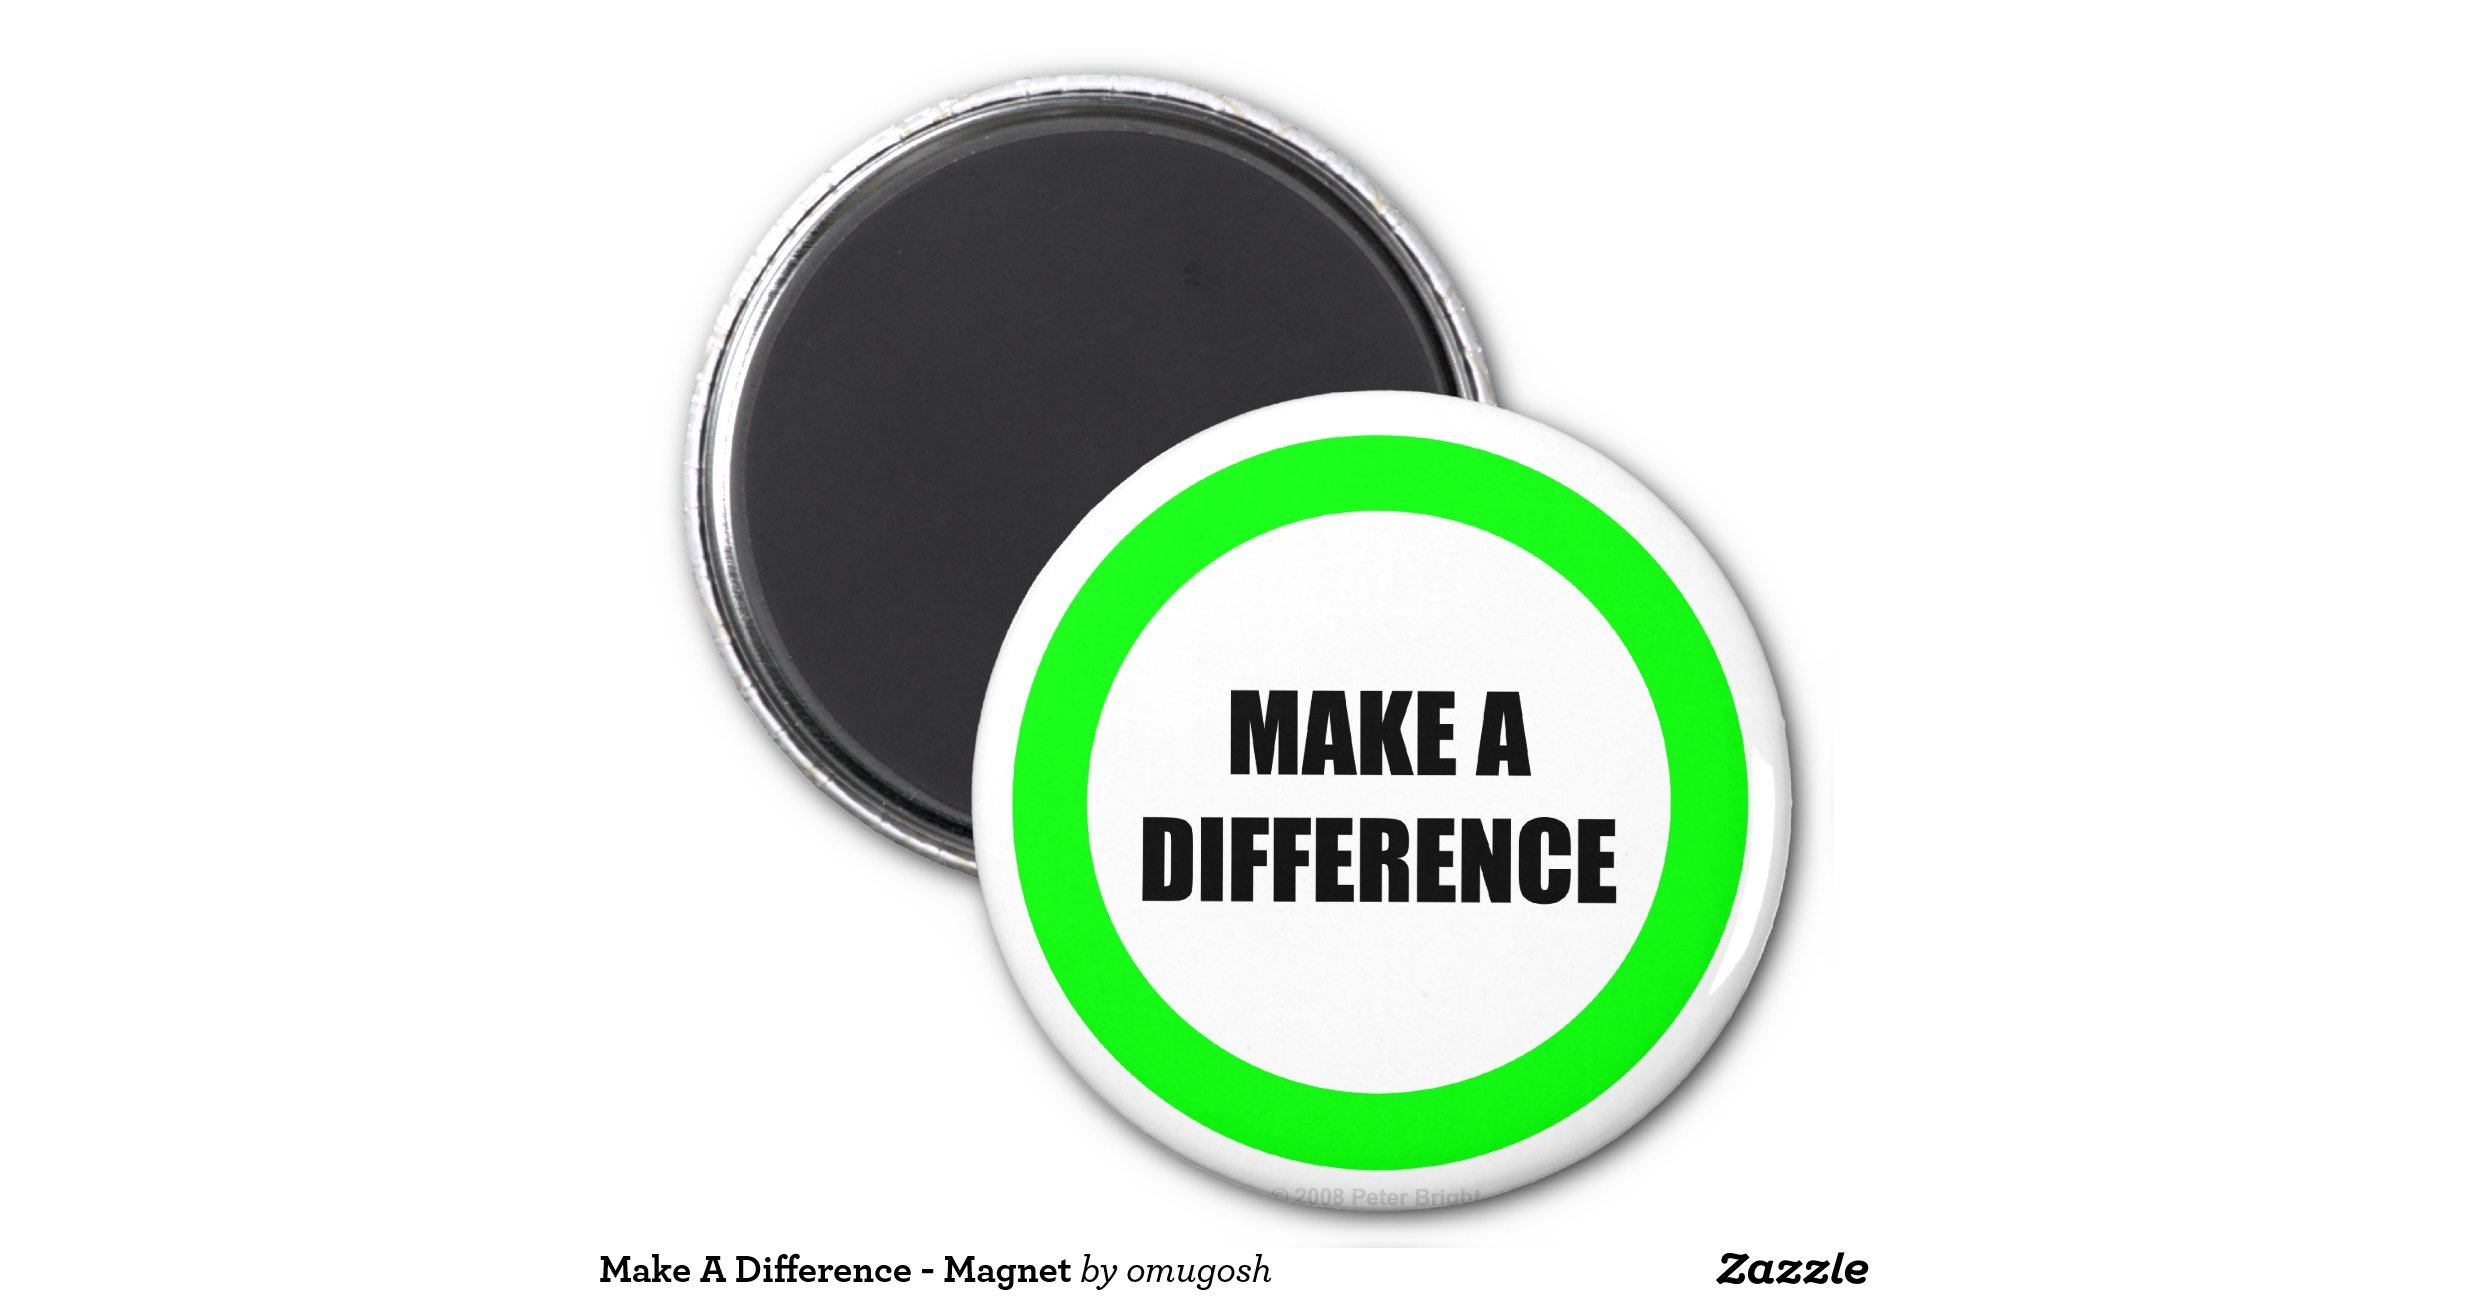 Make A Difference Magnet R1df3fdbba1974e928e77487af9234df6